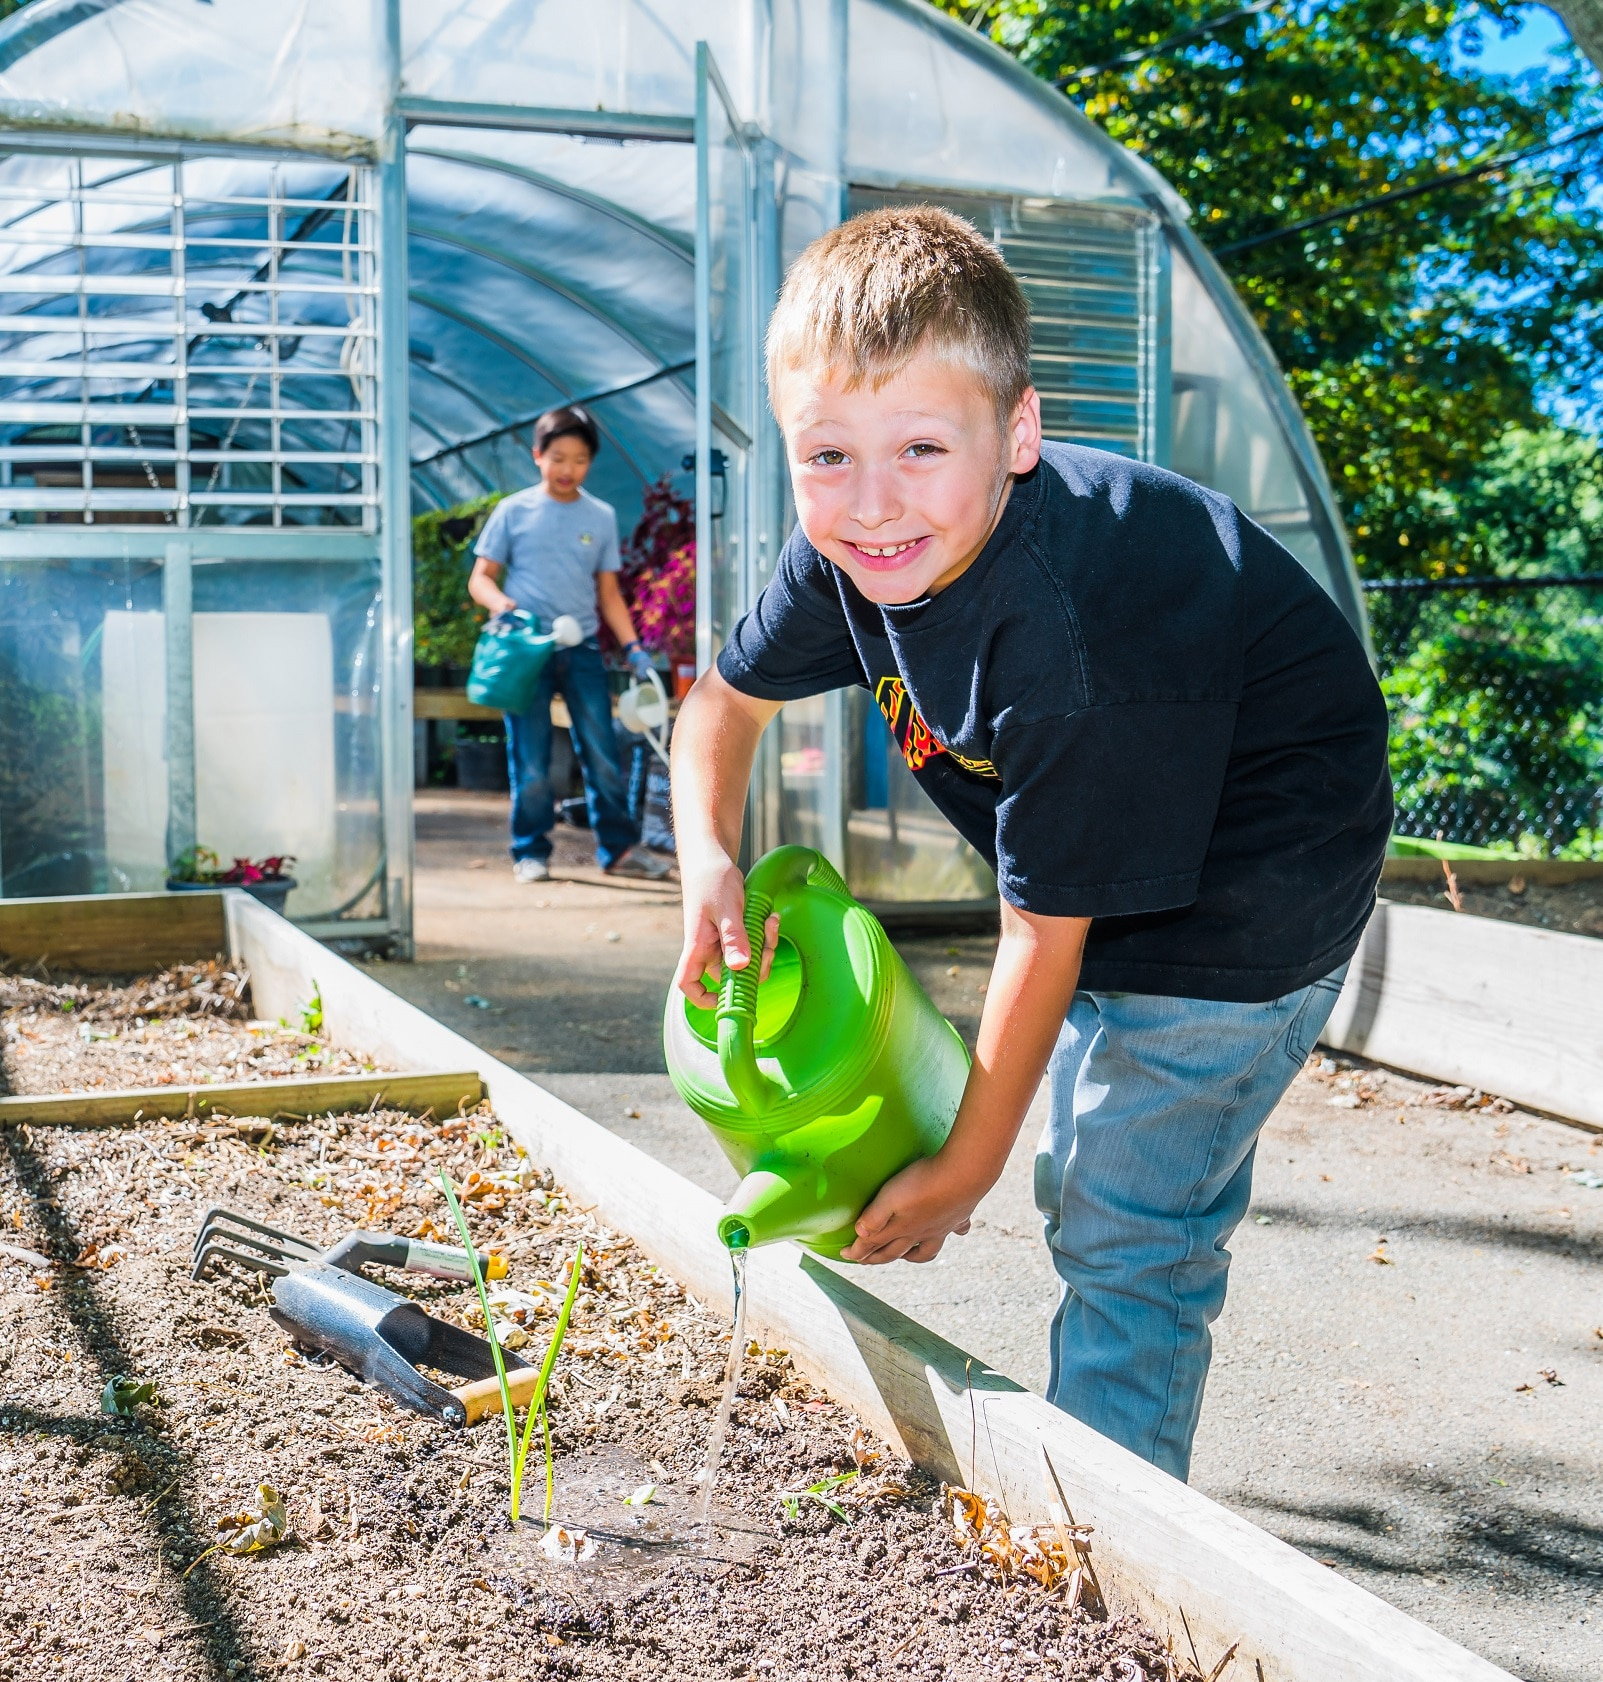 West Hills Academy Student Watering Plants in the Greenhouse